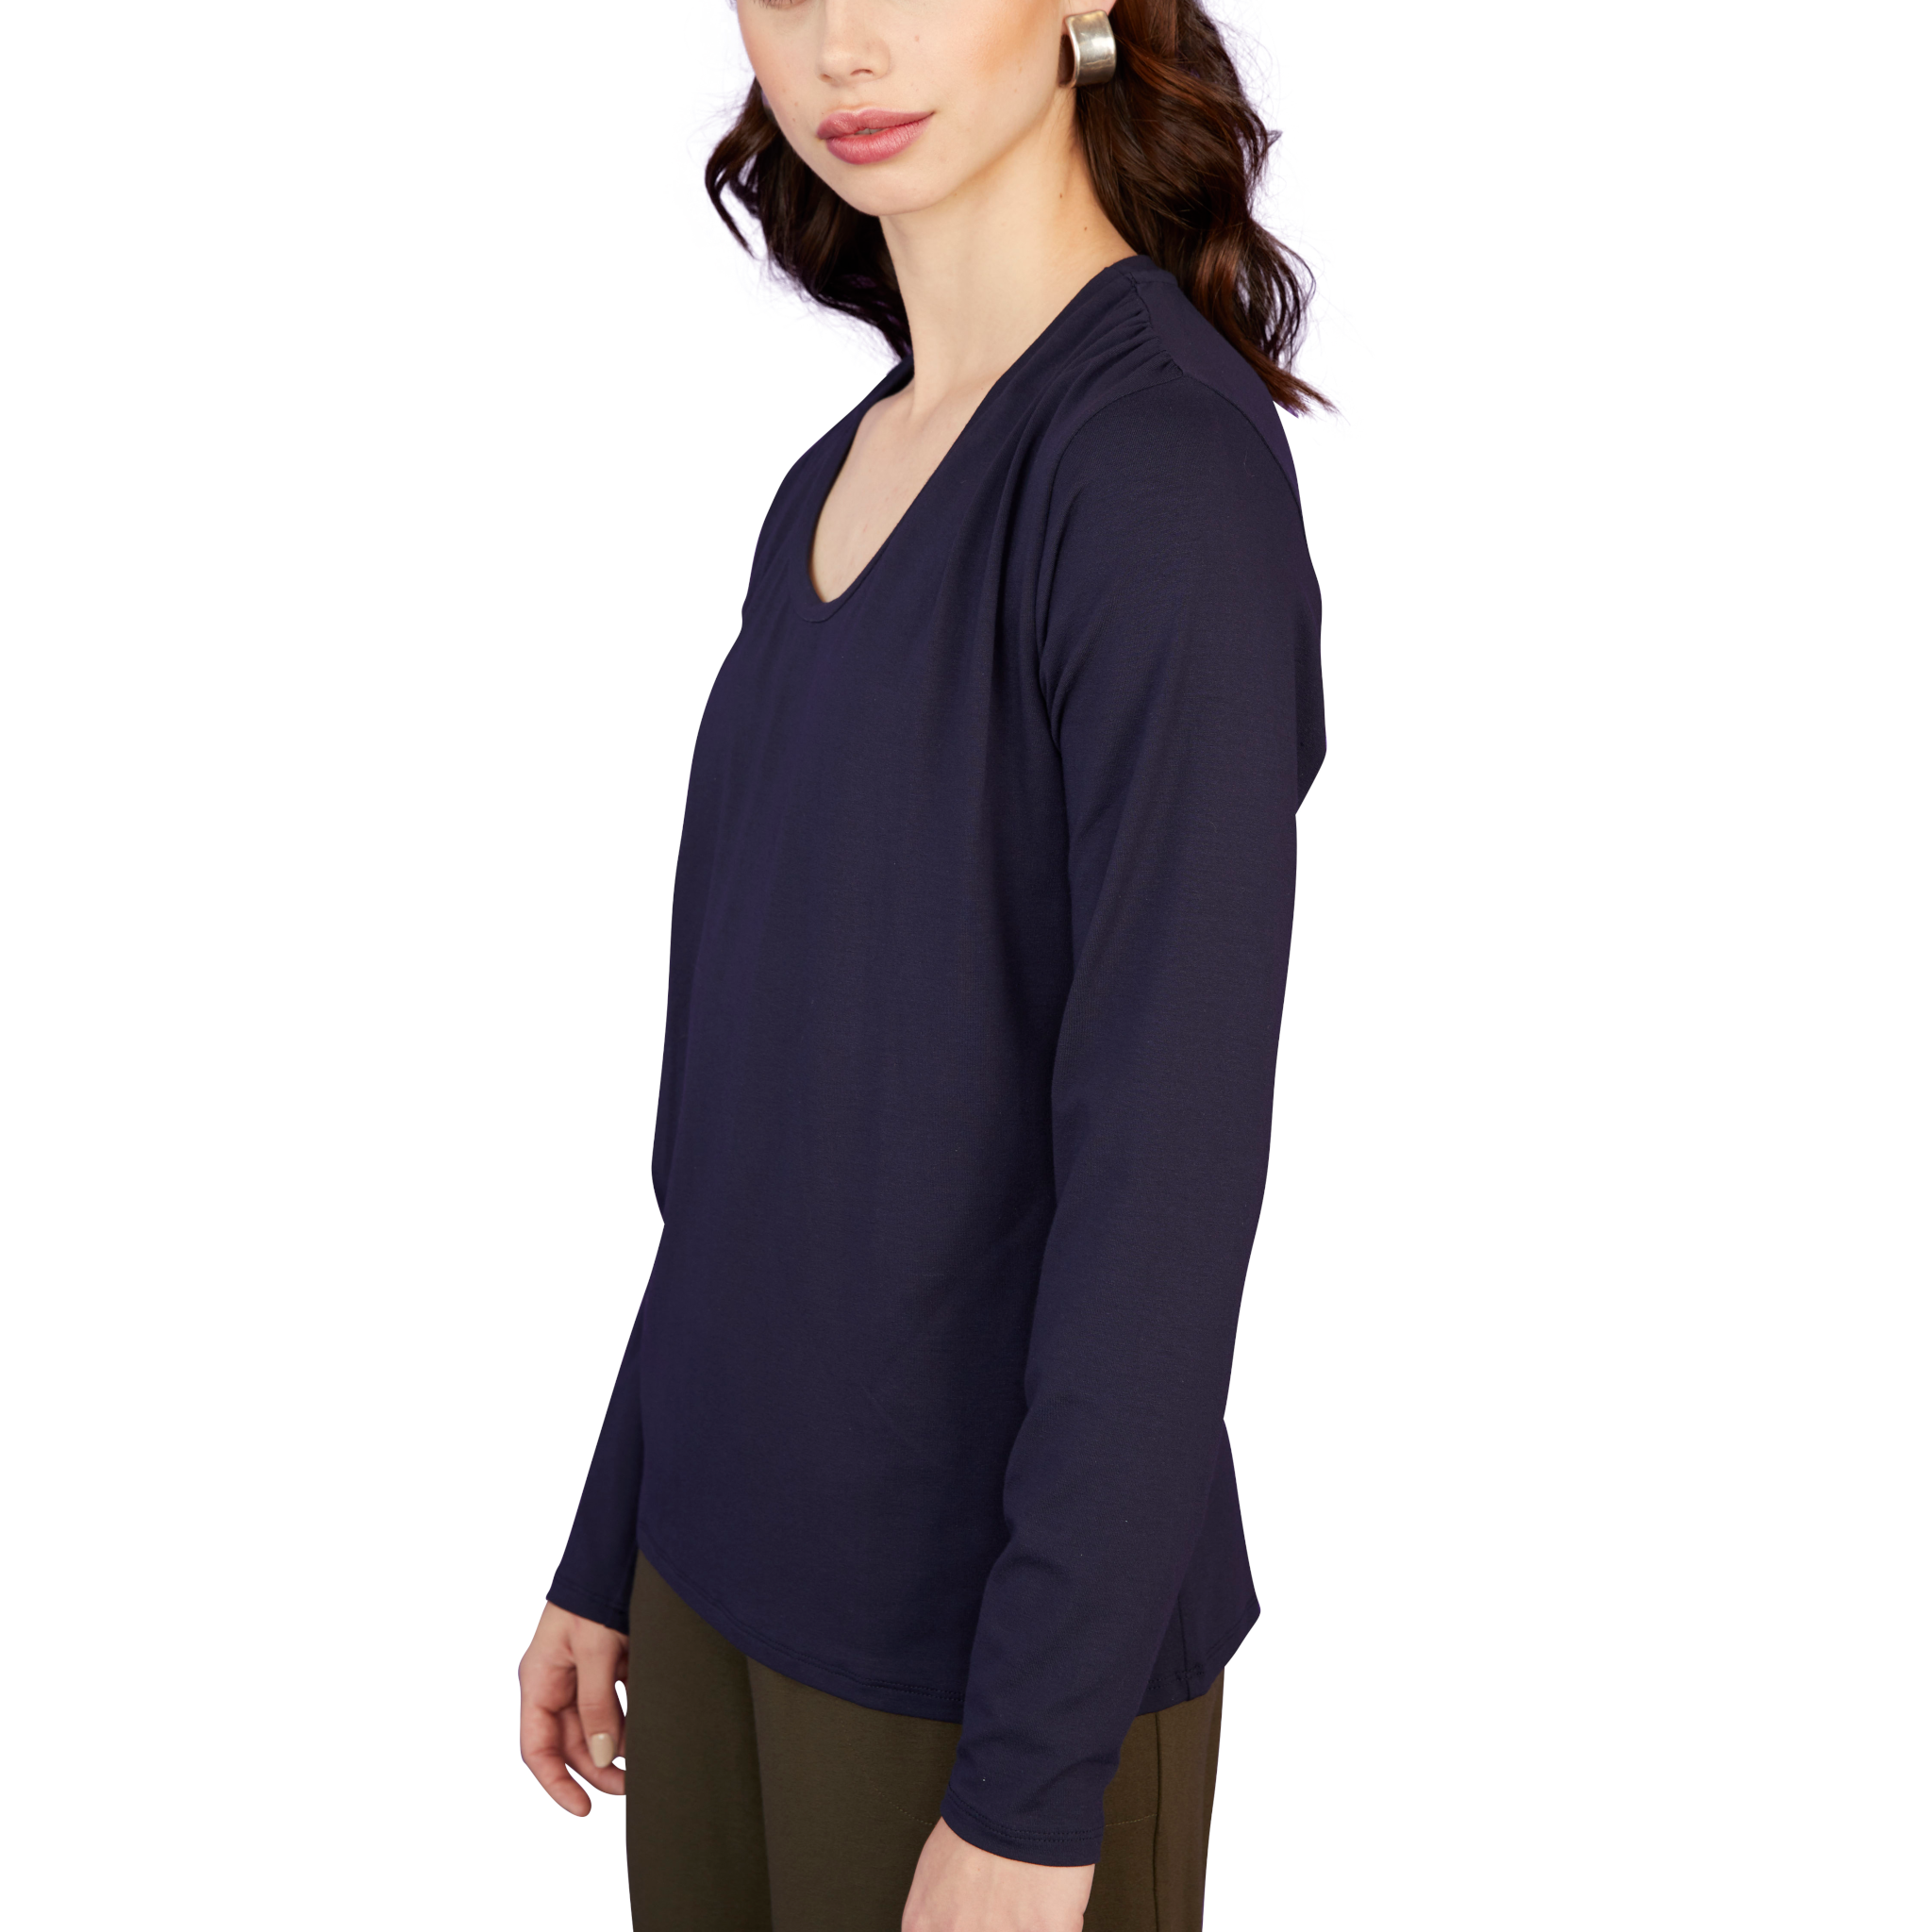 Gathered Shoulder Long Sleeve Tee - Sale